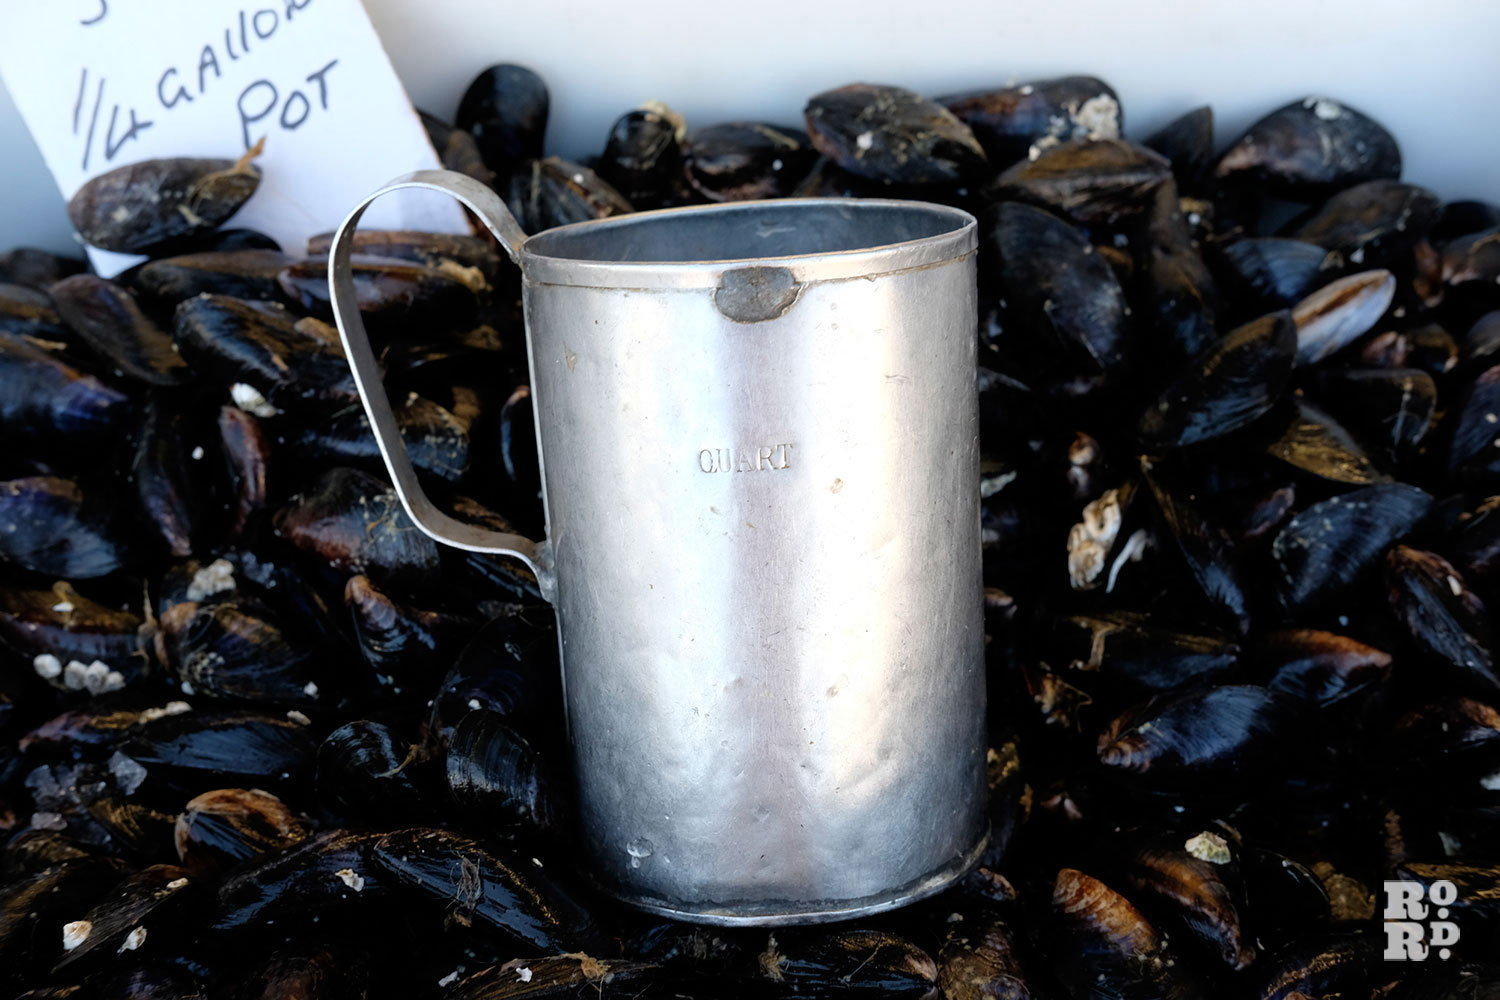 old quart cup used for measuring shellfish at East End fish stall